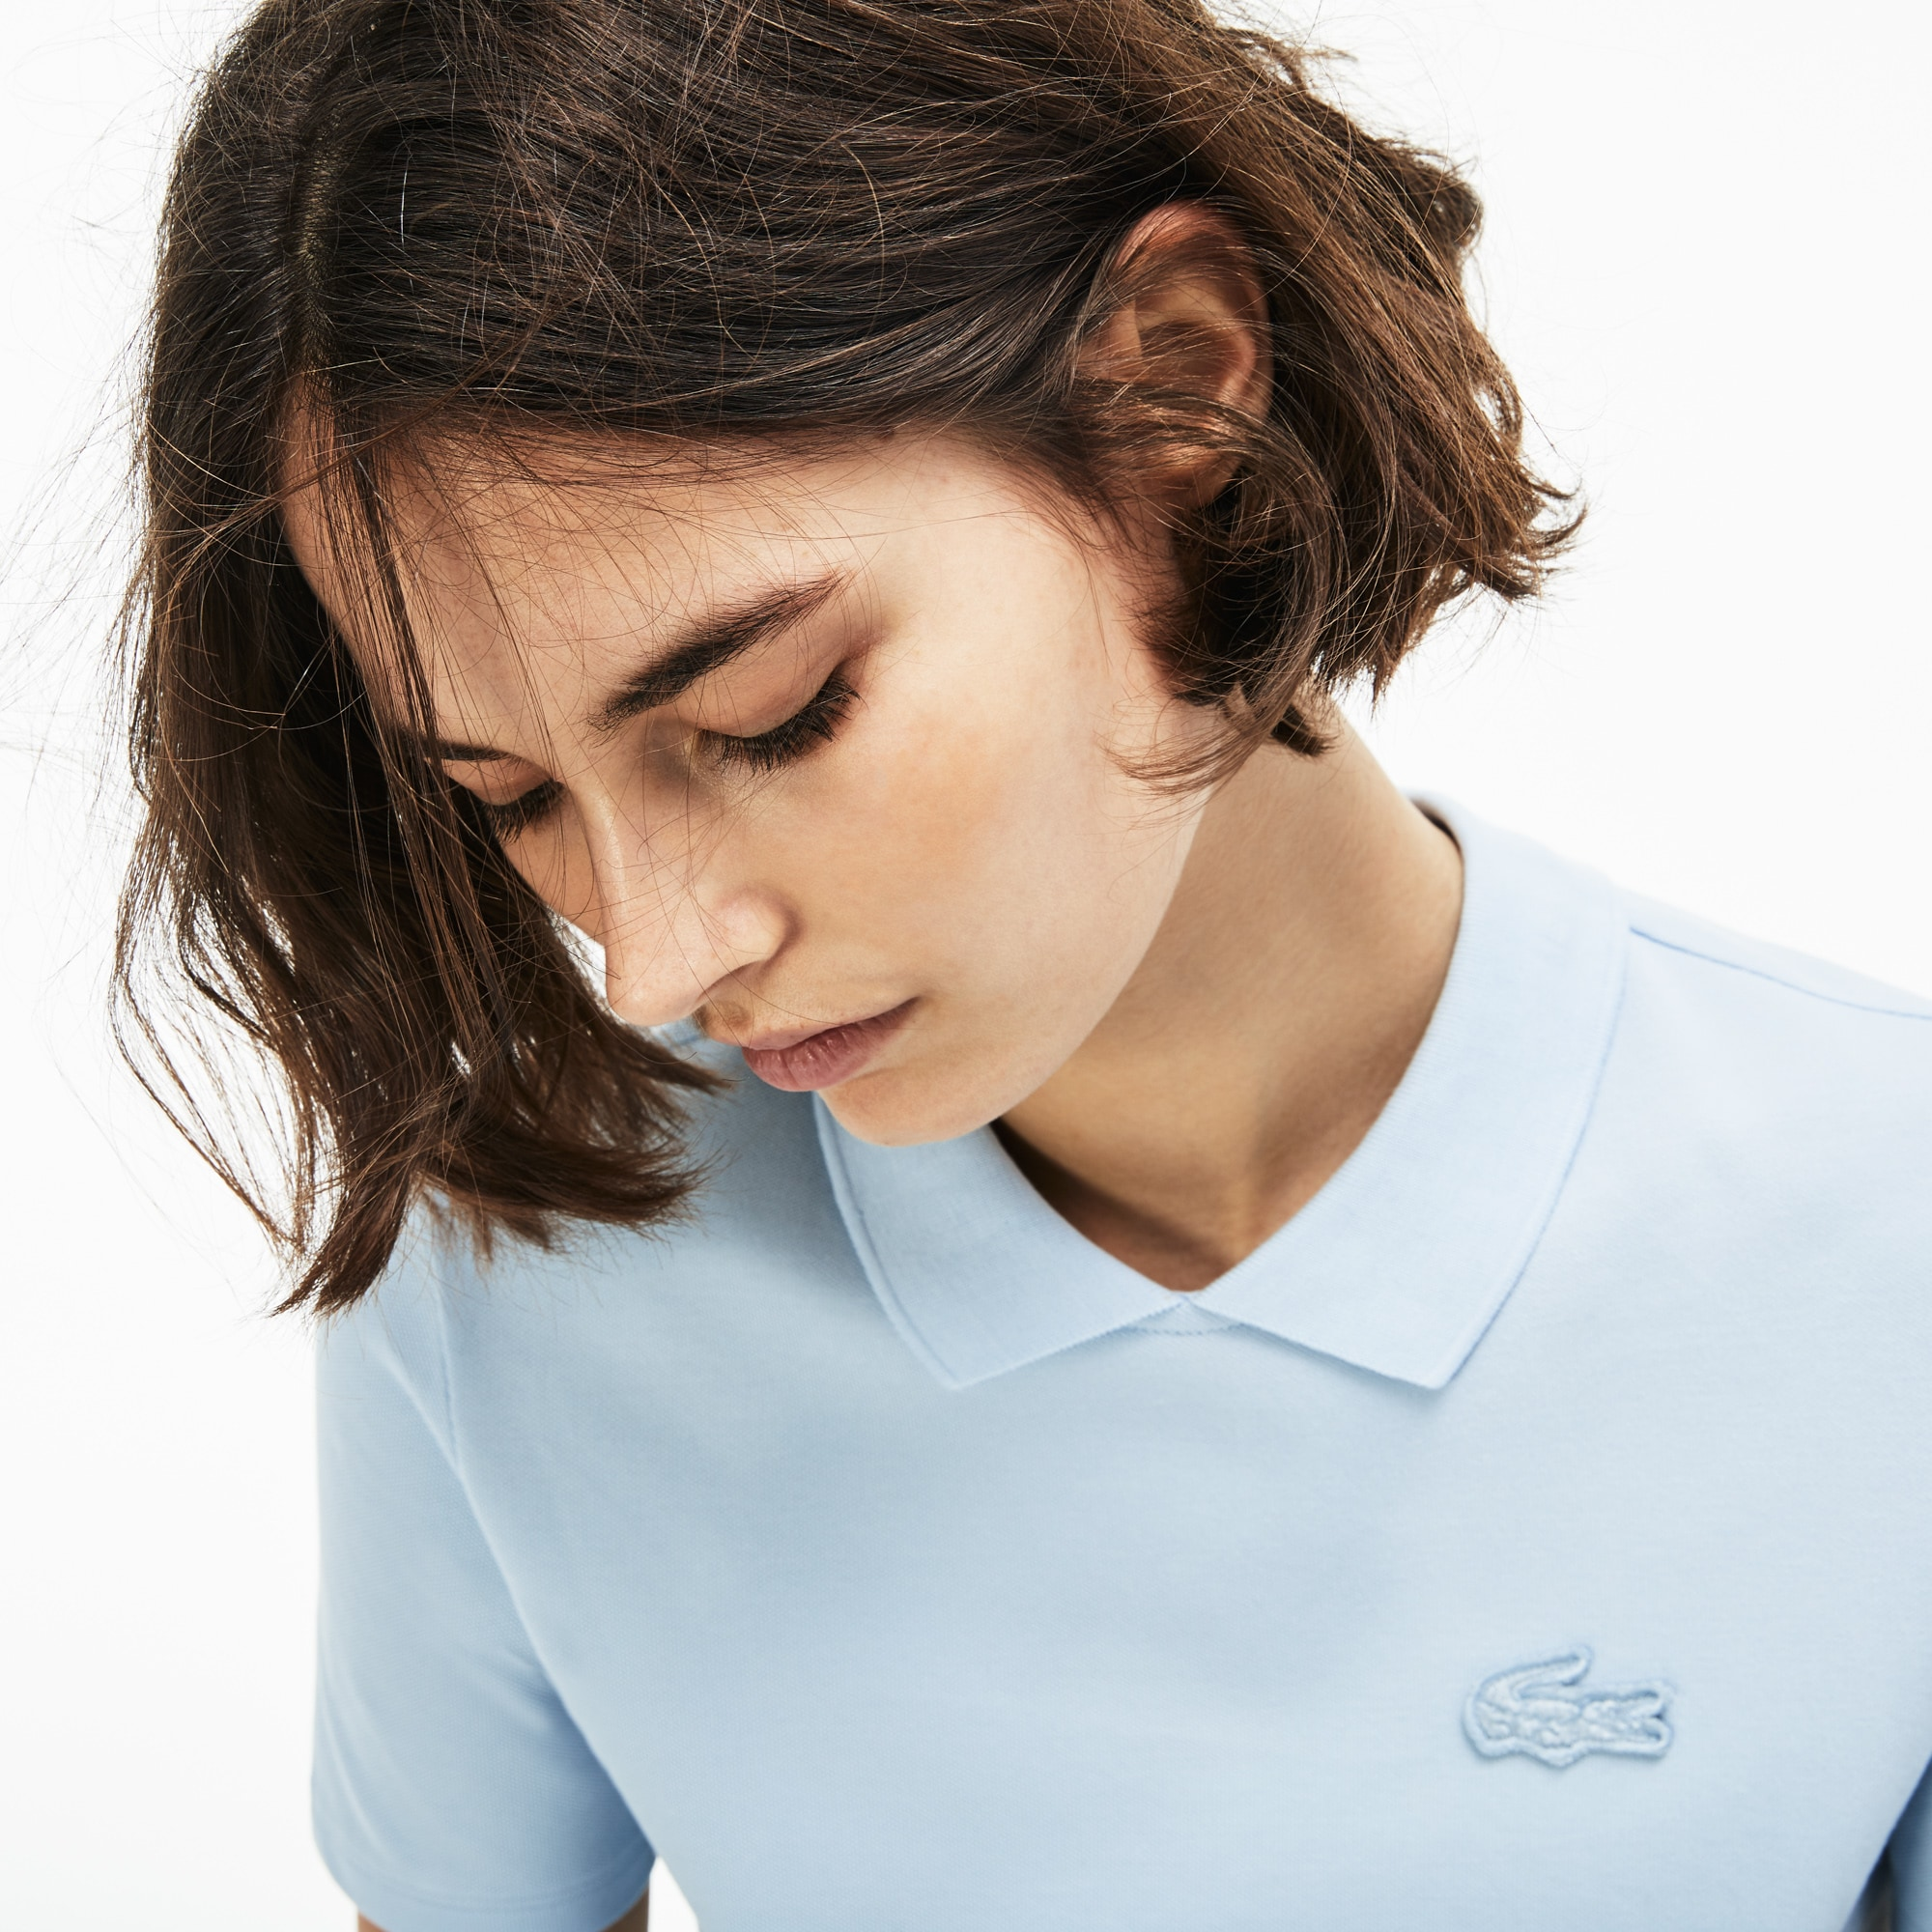 Lacoste LIVE-polo dames mini-piqué met traanopening